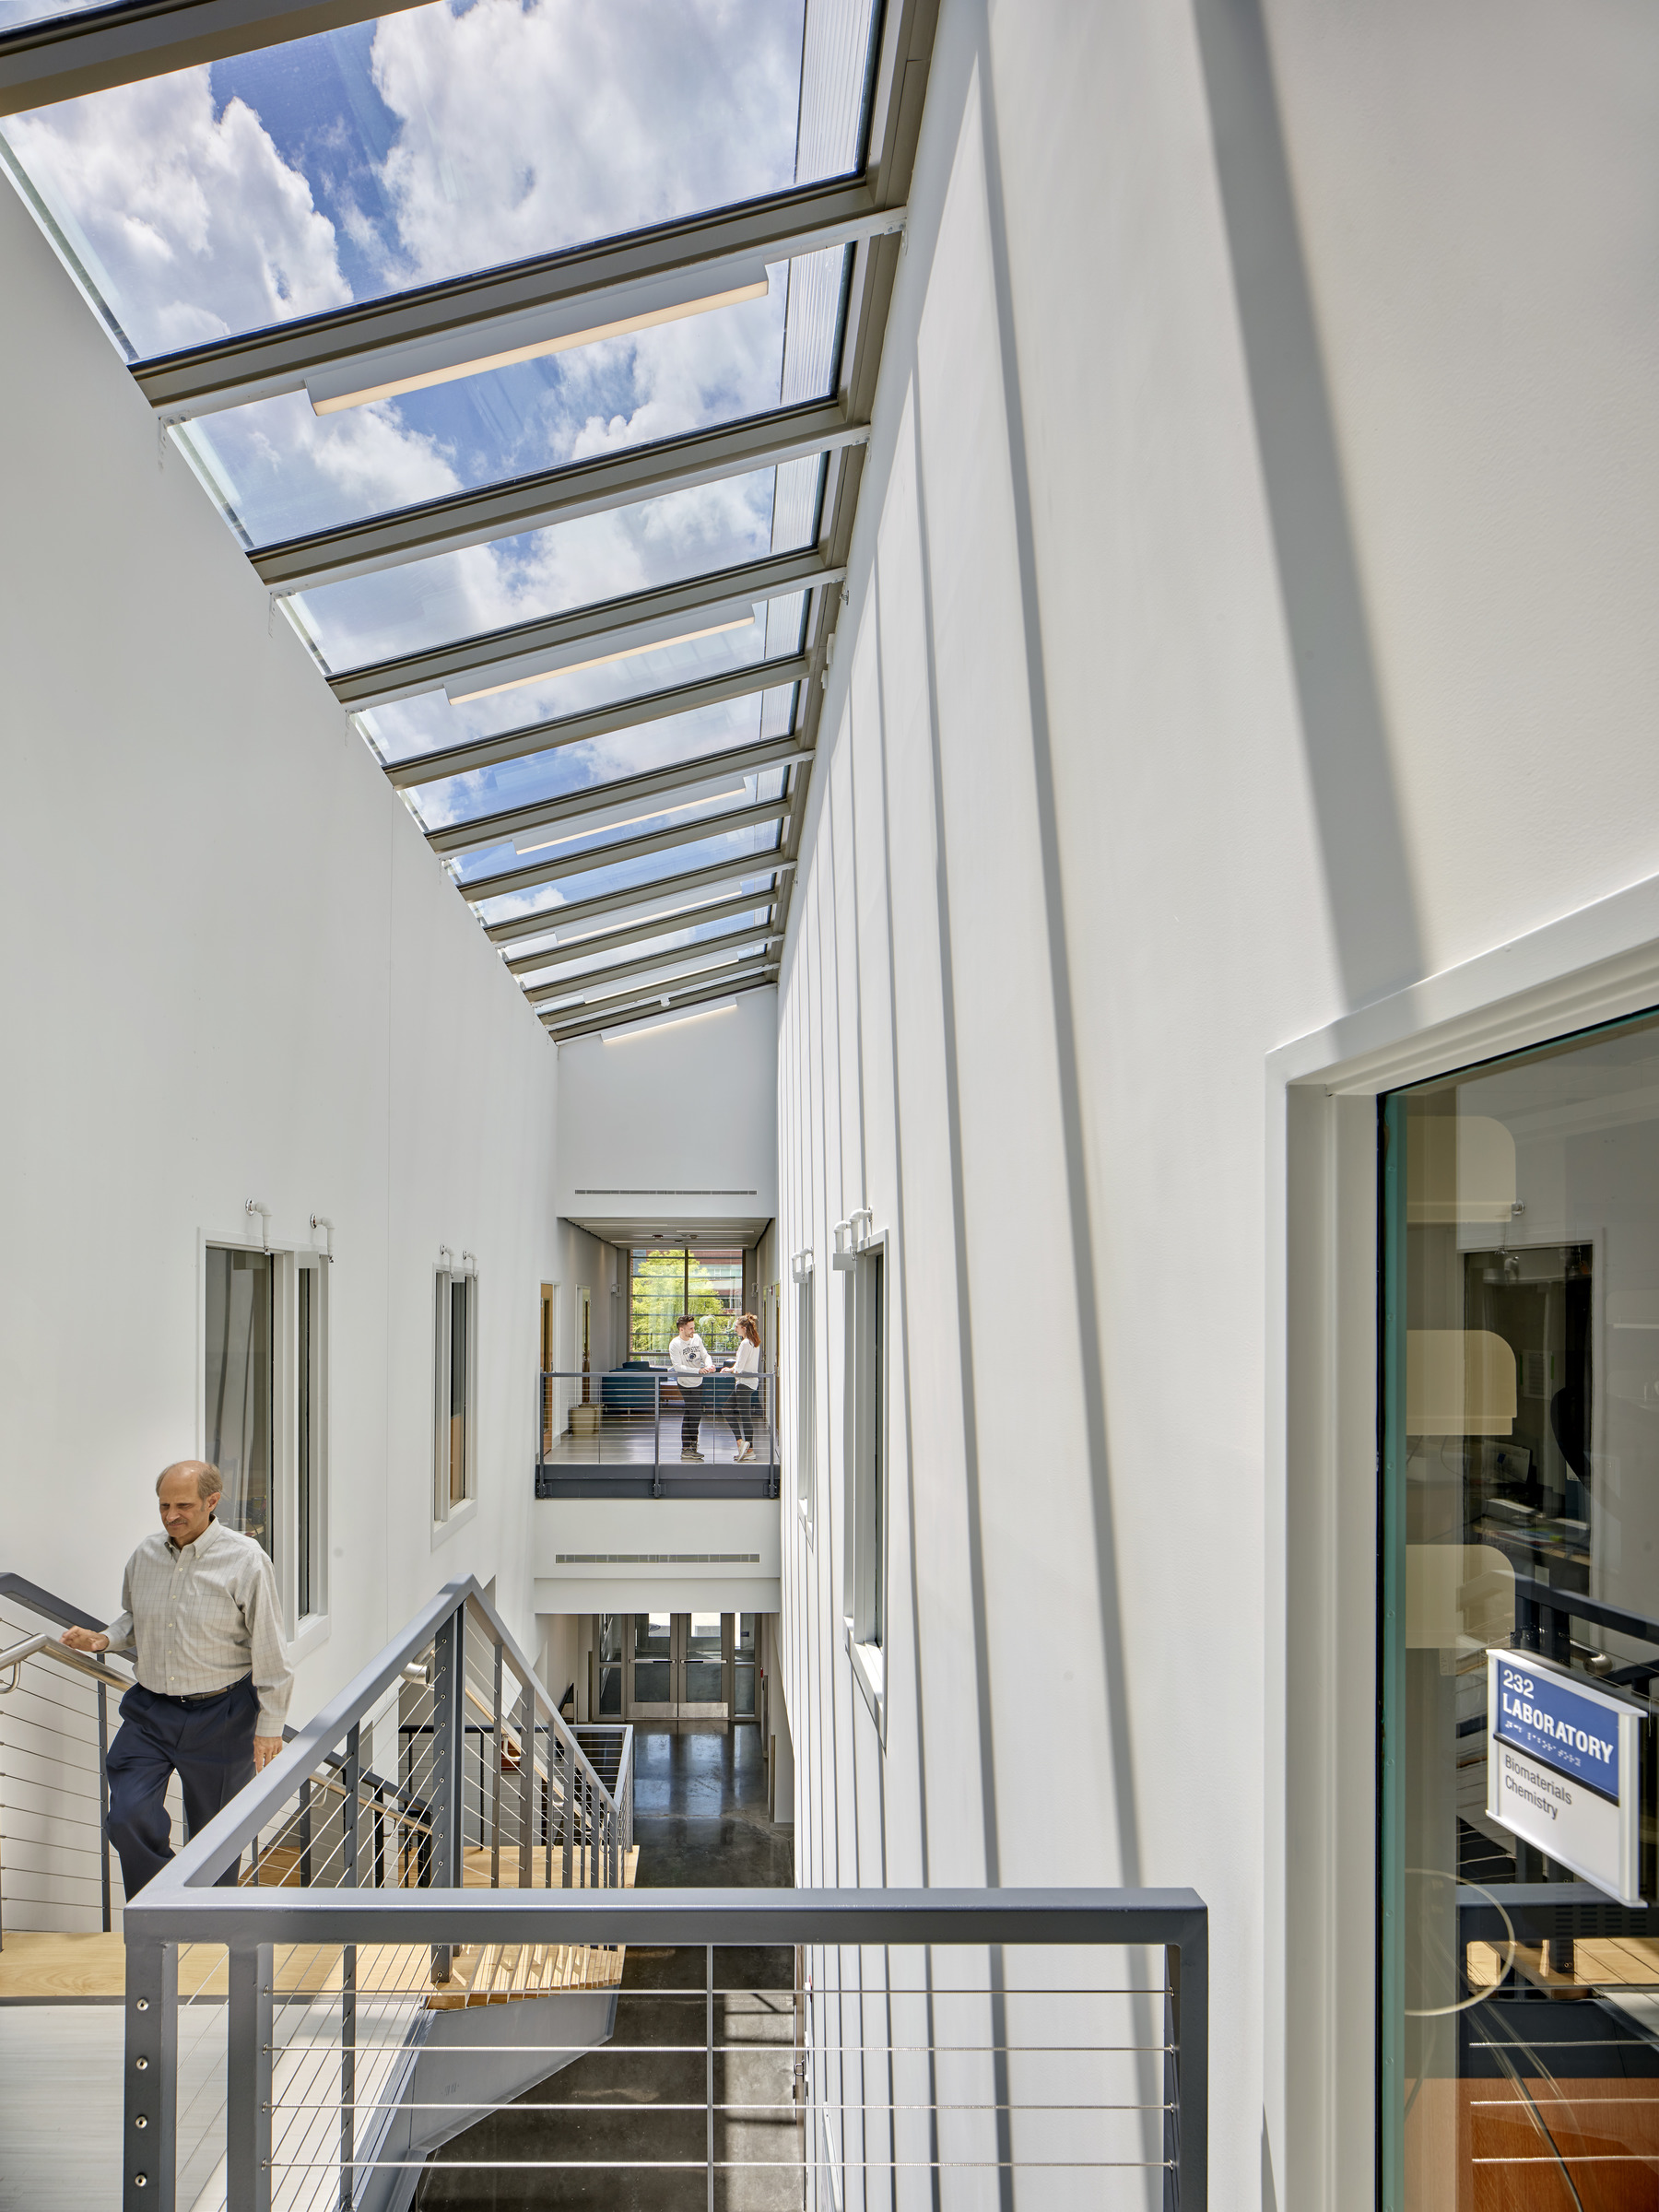 skylights throughout allows natural light to fill the space